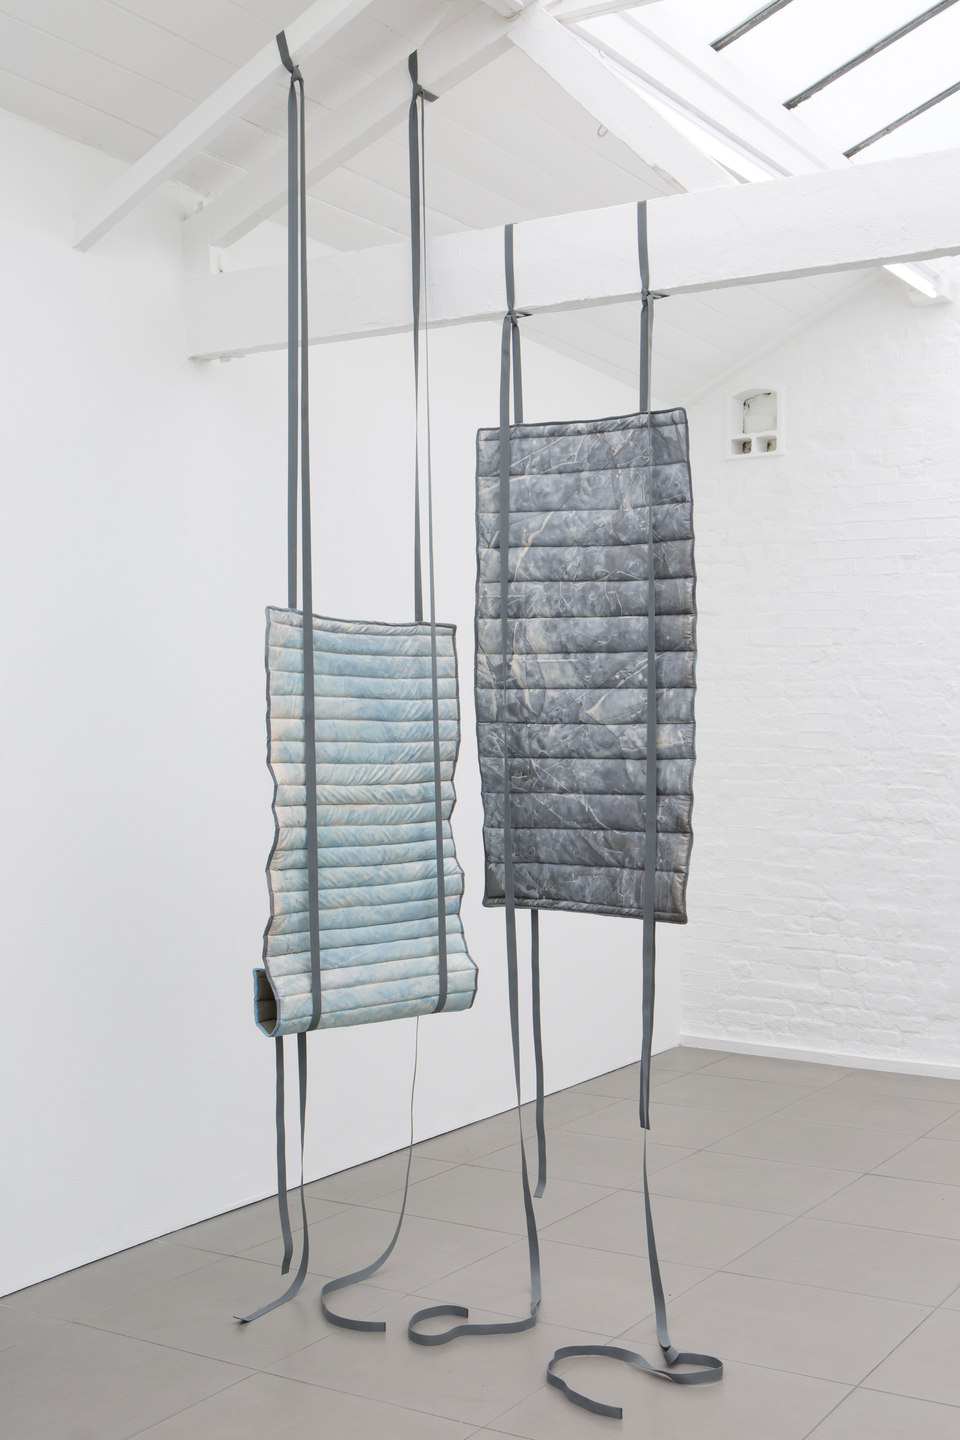 Kate Mackeson & Henrik Potter, 'landlords are not currently collecting rent in self-love', Kate Mackeson, Bullet proof (blue) & Bullet proof, 2016, Cell Project Space